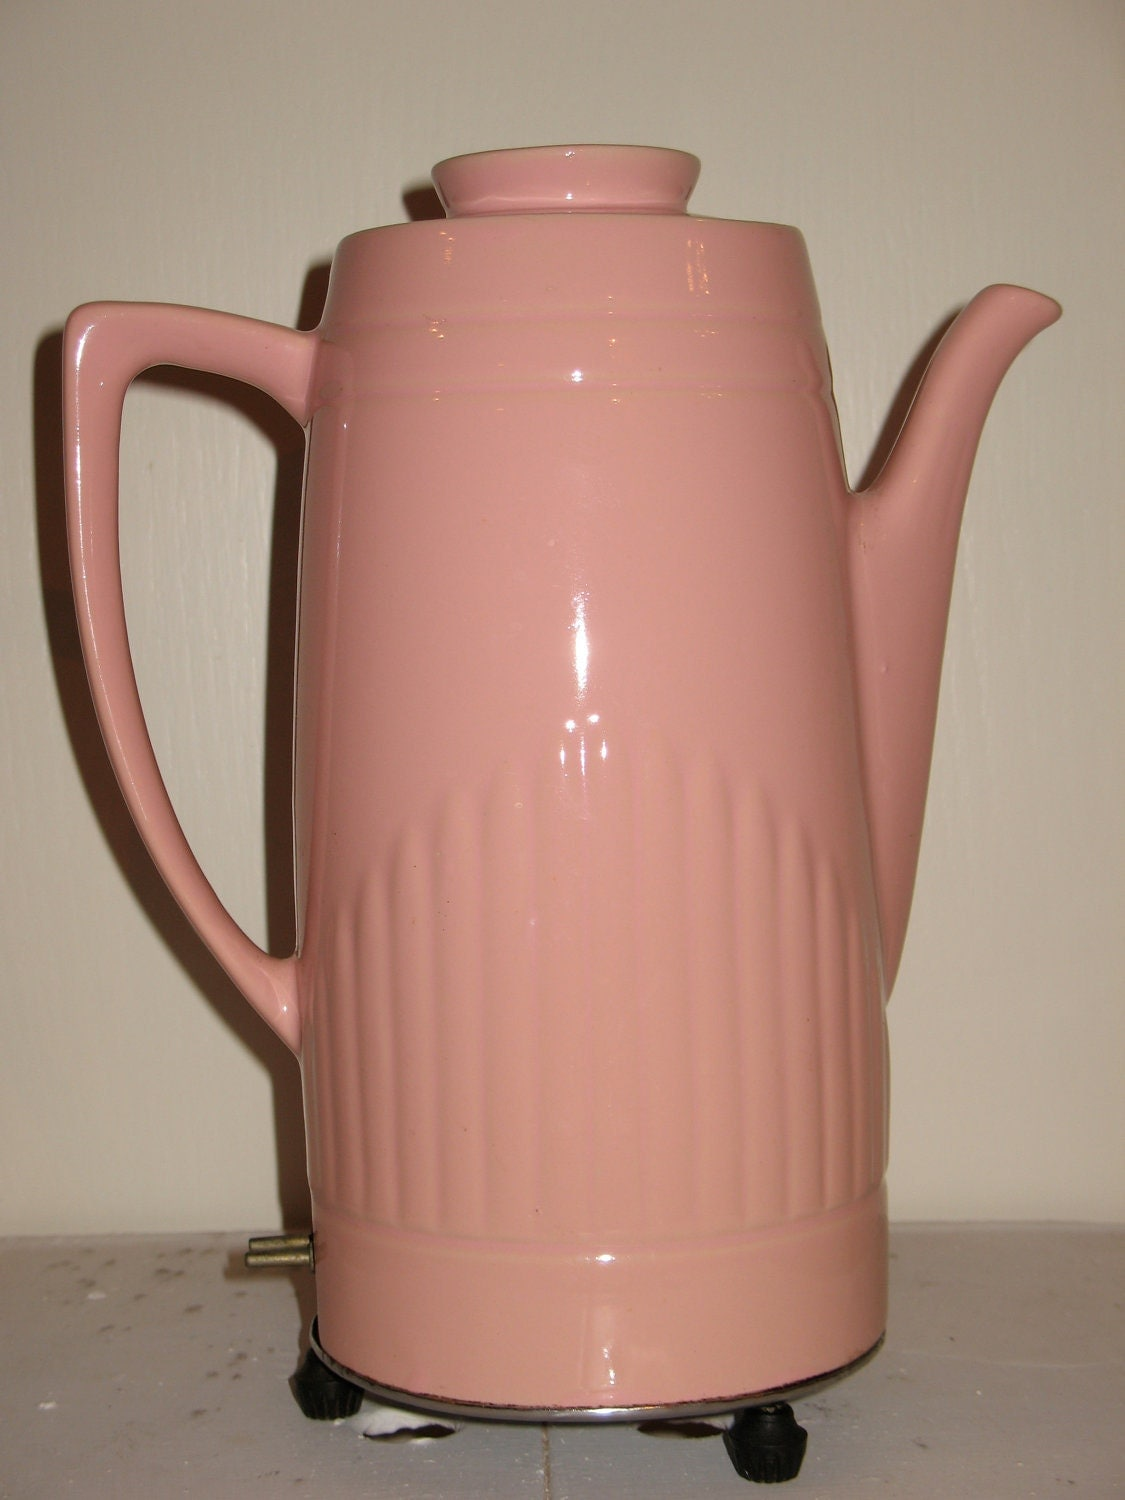 1950s Pink Percolator Coffee Maker Coffee Pot by benelei on Etsy